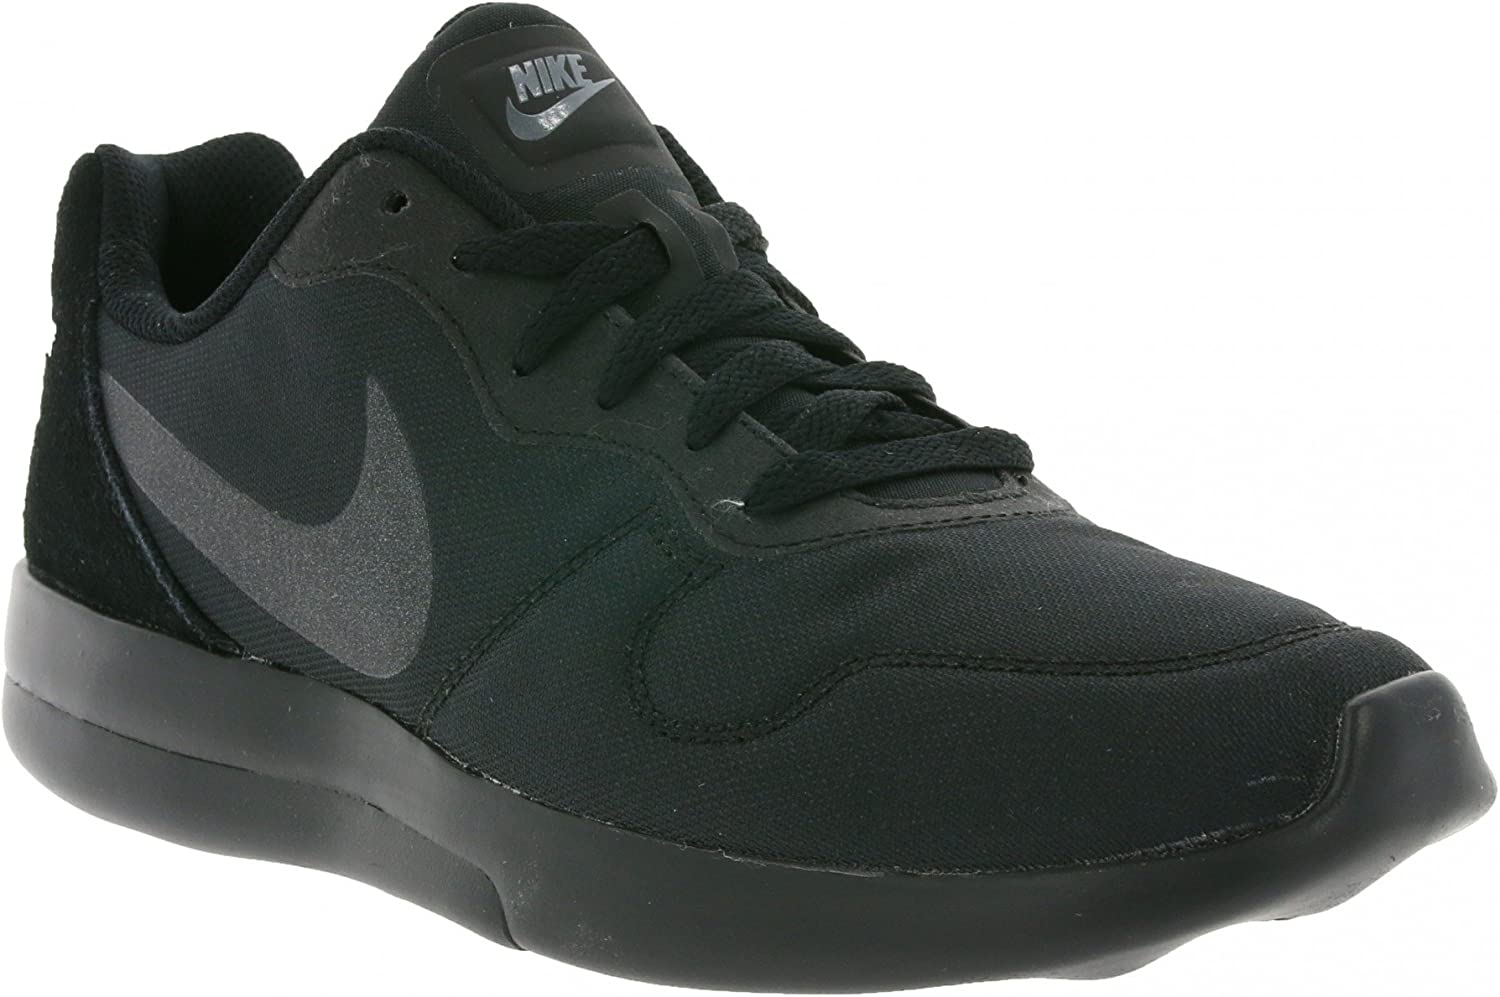 Nike Mens MD Runner 2 Running Sneakers